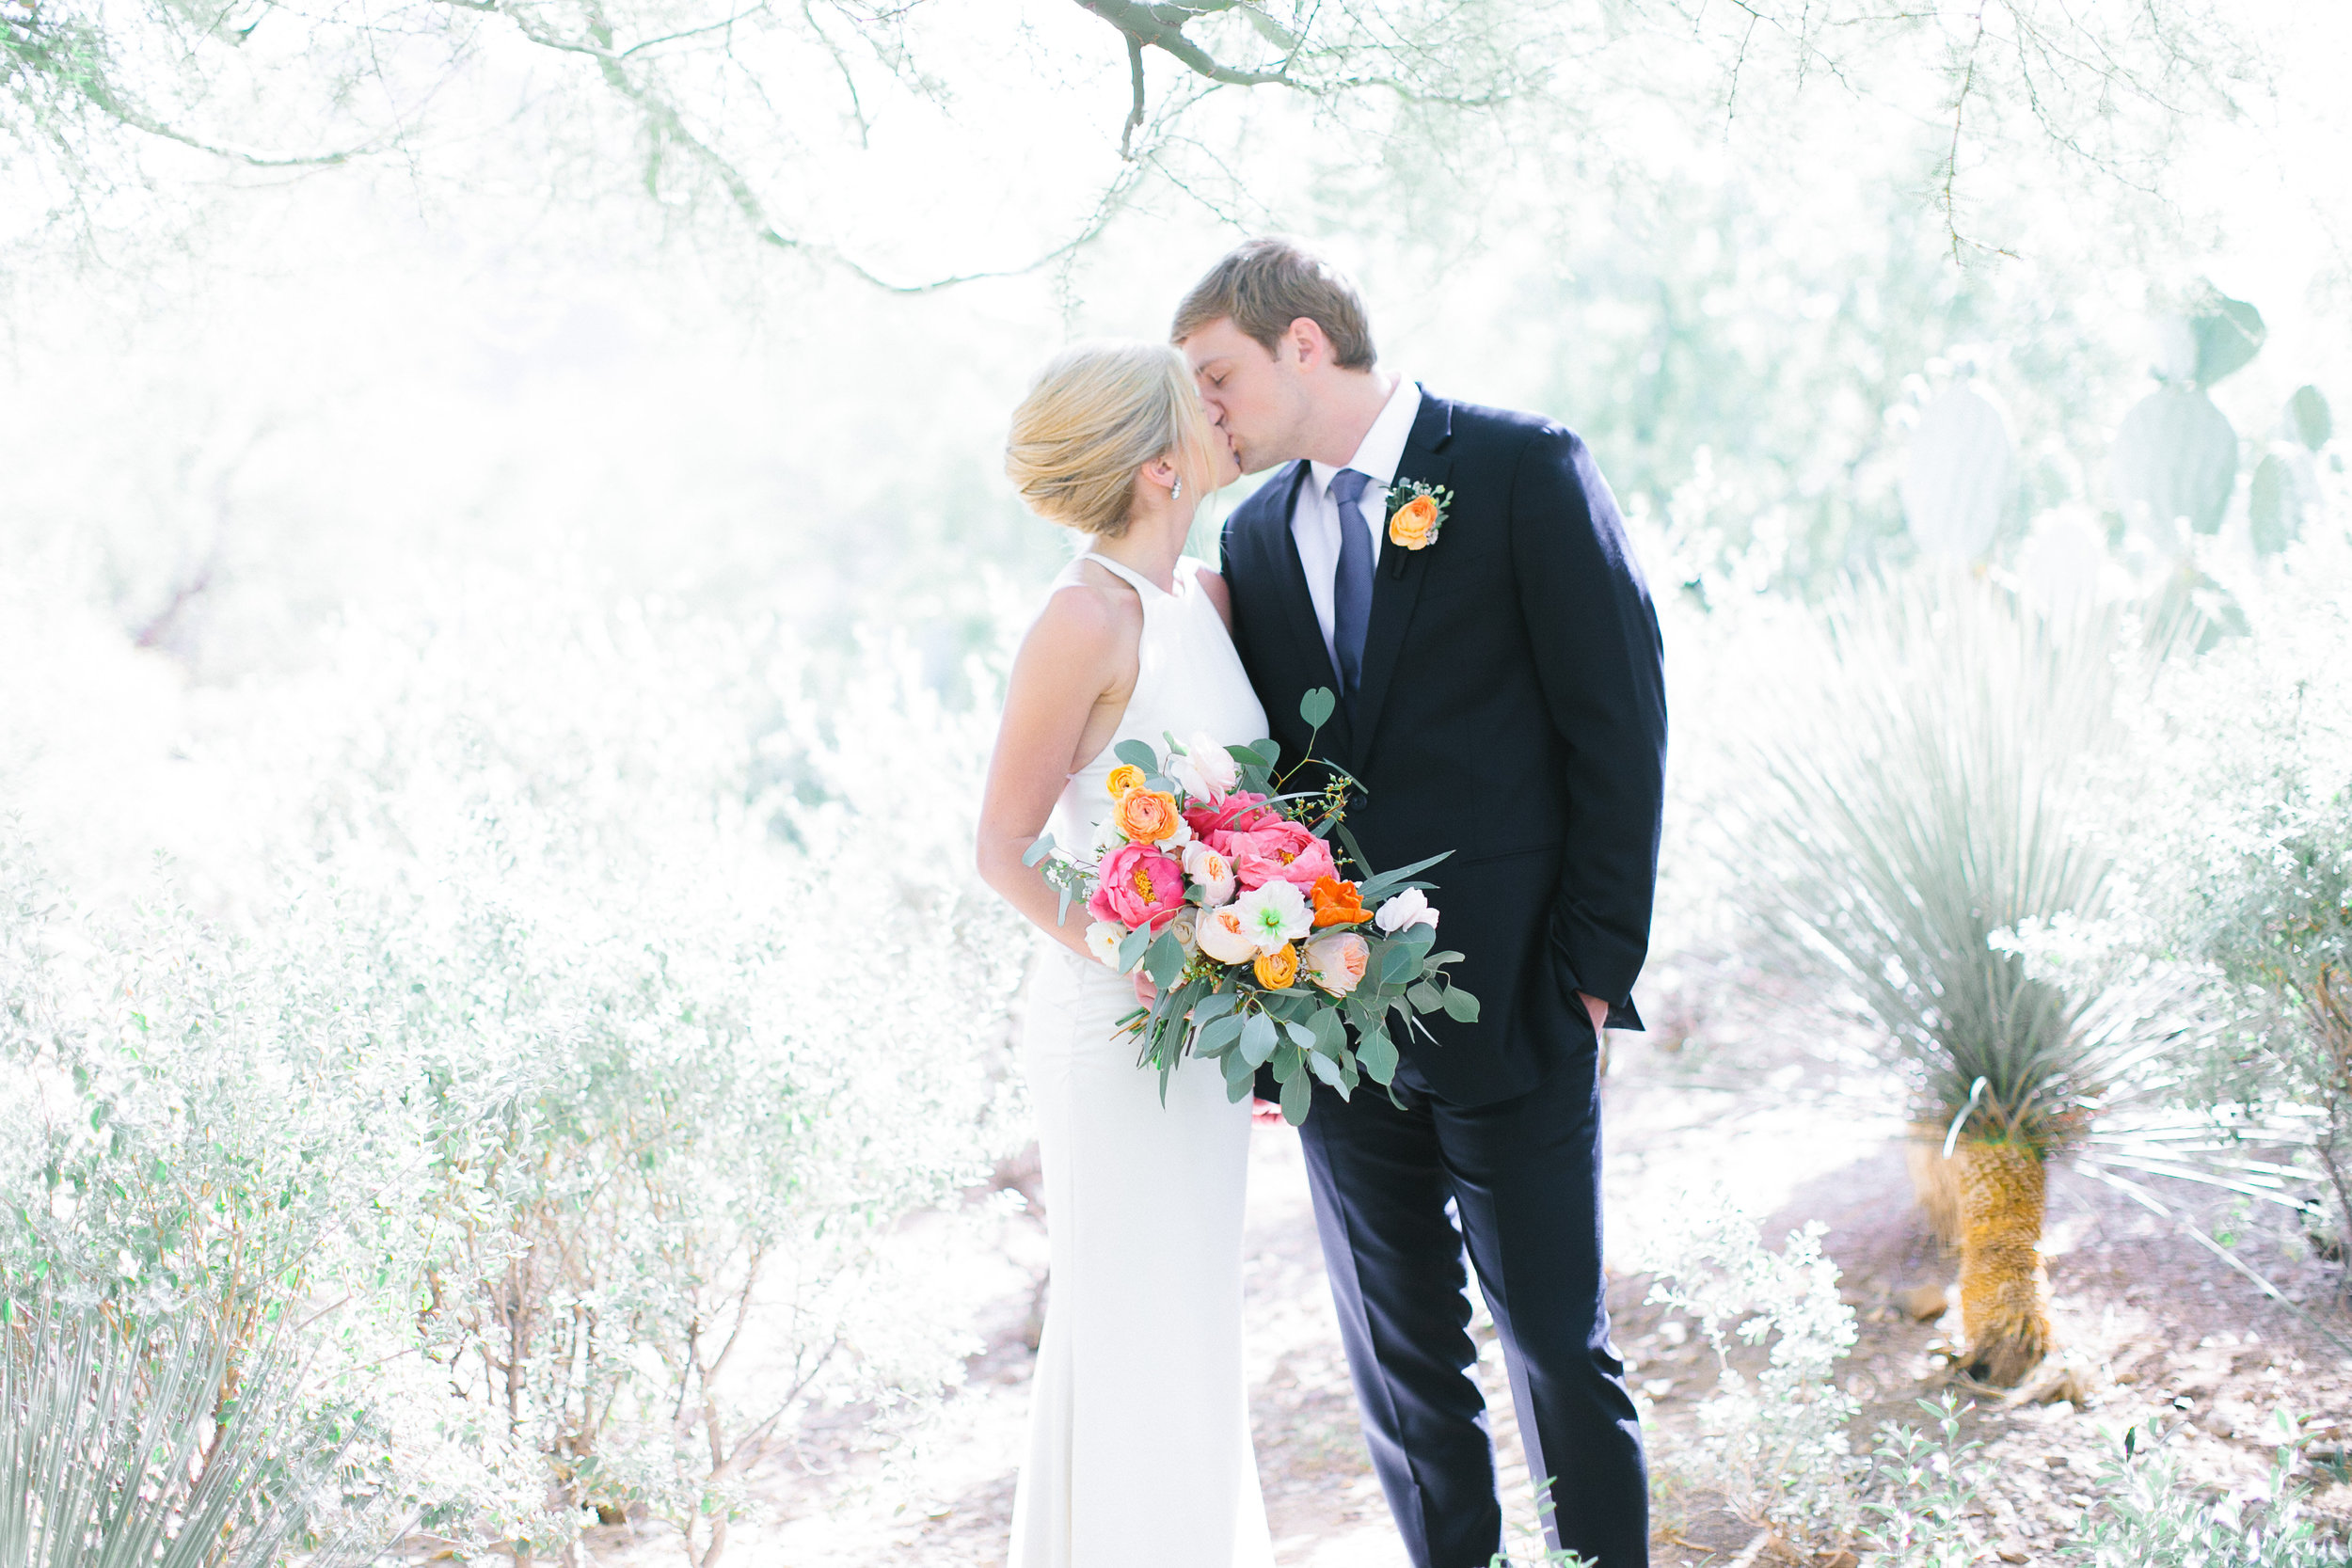 wedding el chorro scottsdale phoenix bride groom bouquet peach pink coral blush planner